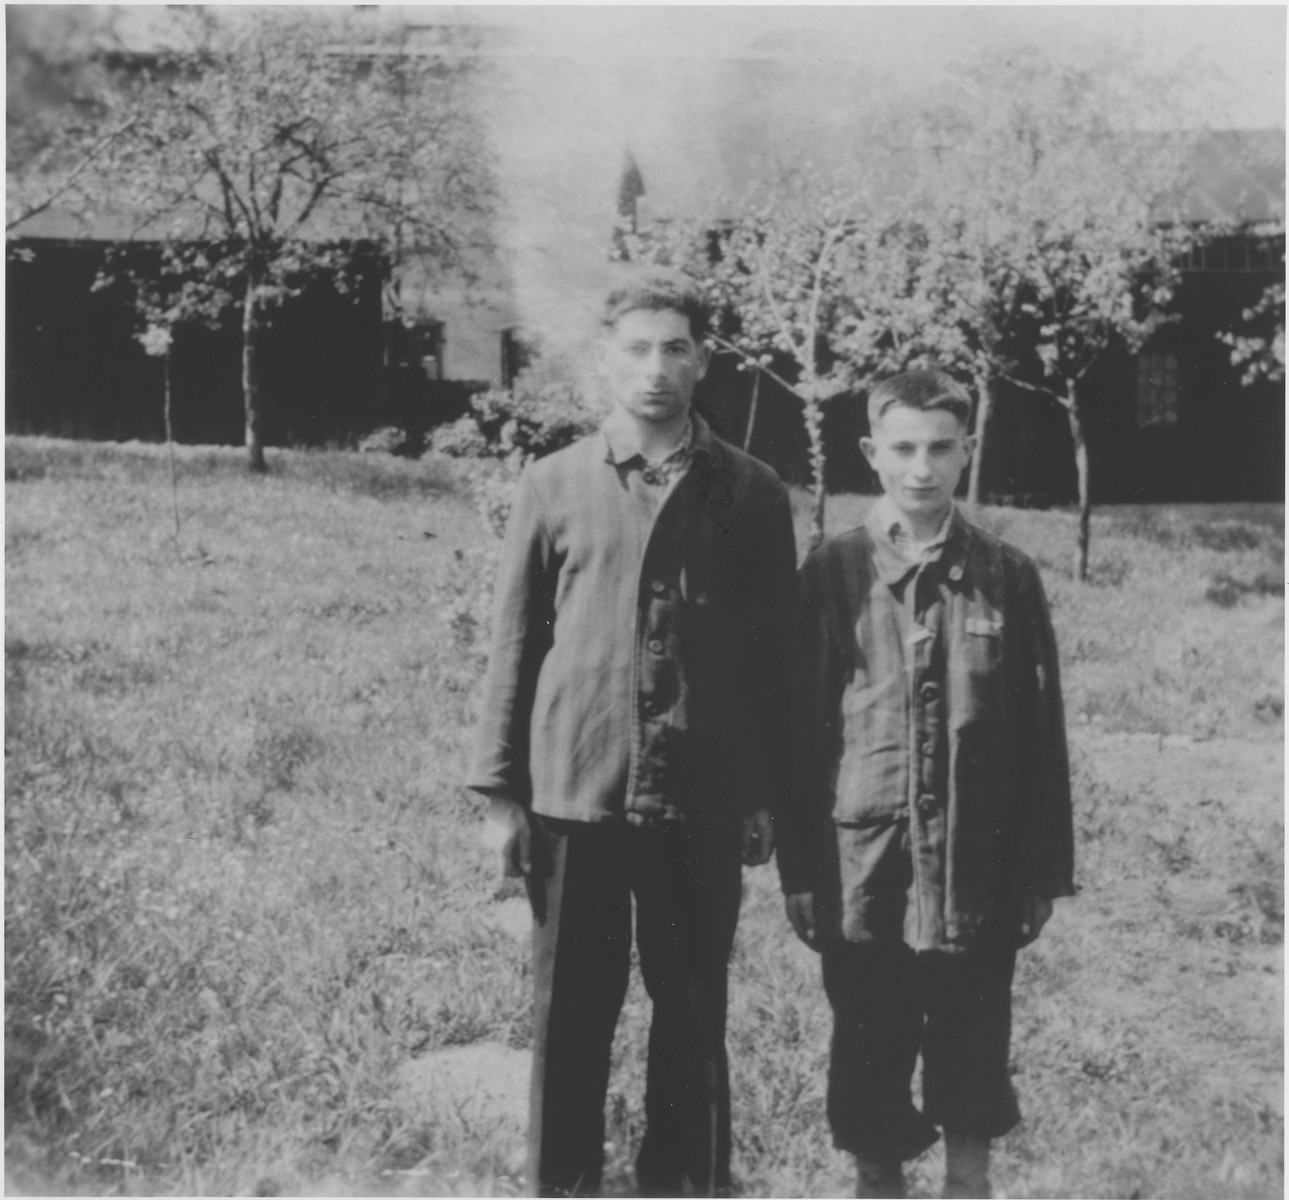 A Jewish father and son pose in their concentration camp uniforms soon after their liberation.  Pictured at the left is Carki Cukier, a cousin of Helen Sztelman Laudon. Carki and his son were imprisoned at the Skarzysko Kamienna factory labor camp during the war.